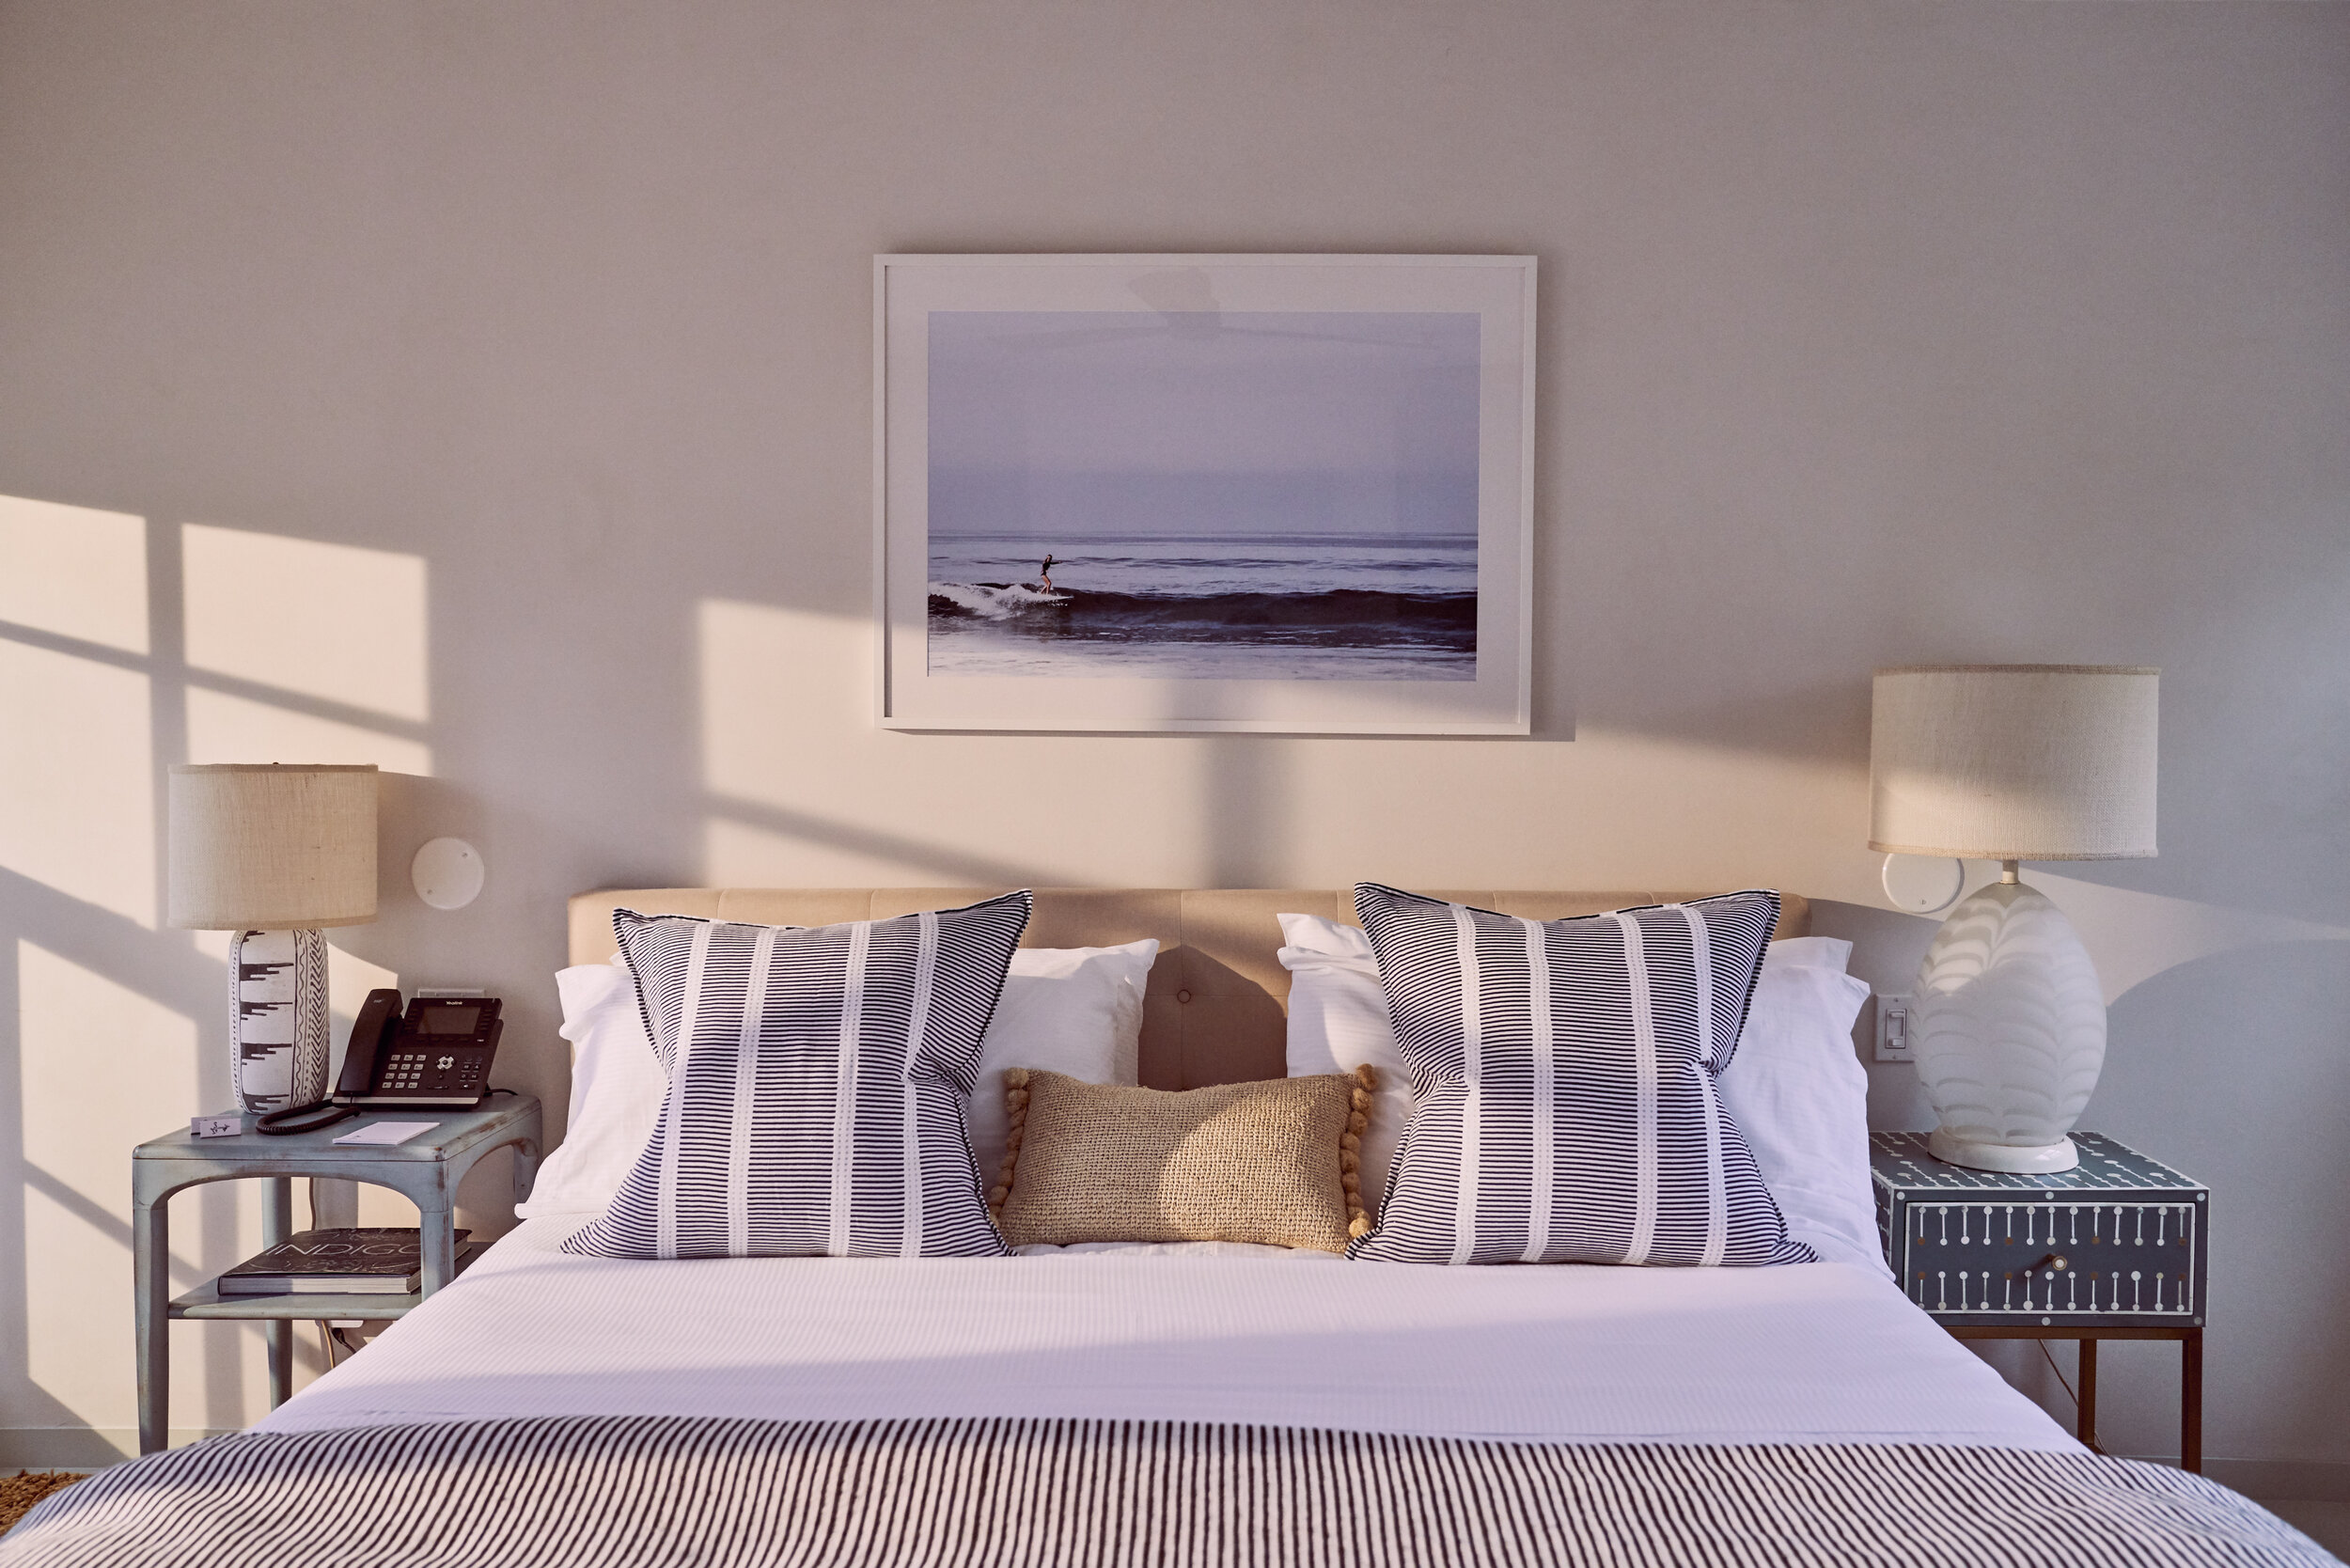 ROOM AT THE BEACH 2.jpg